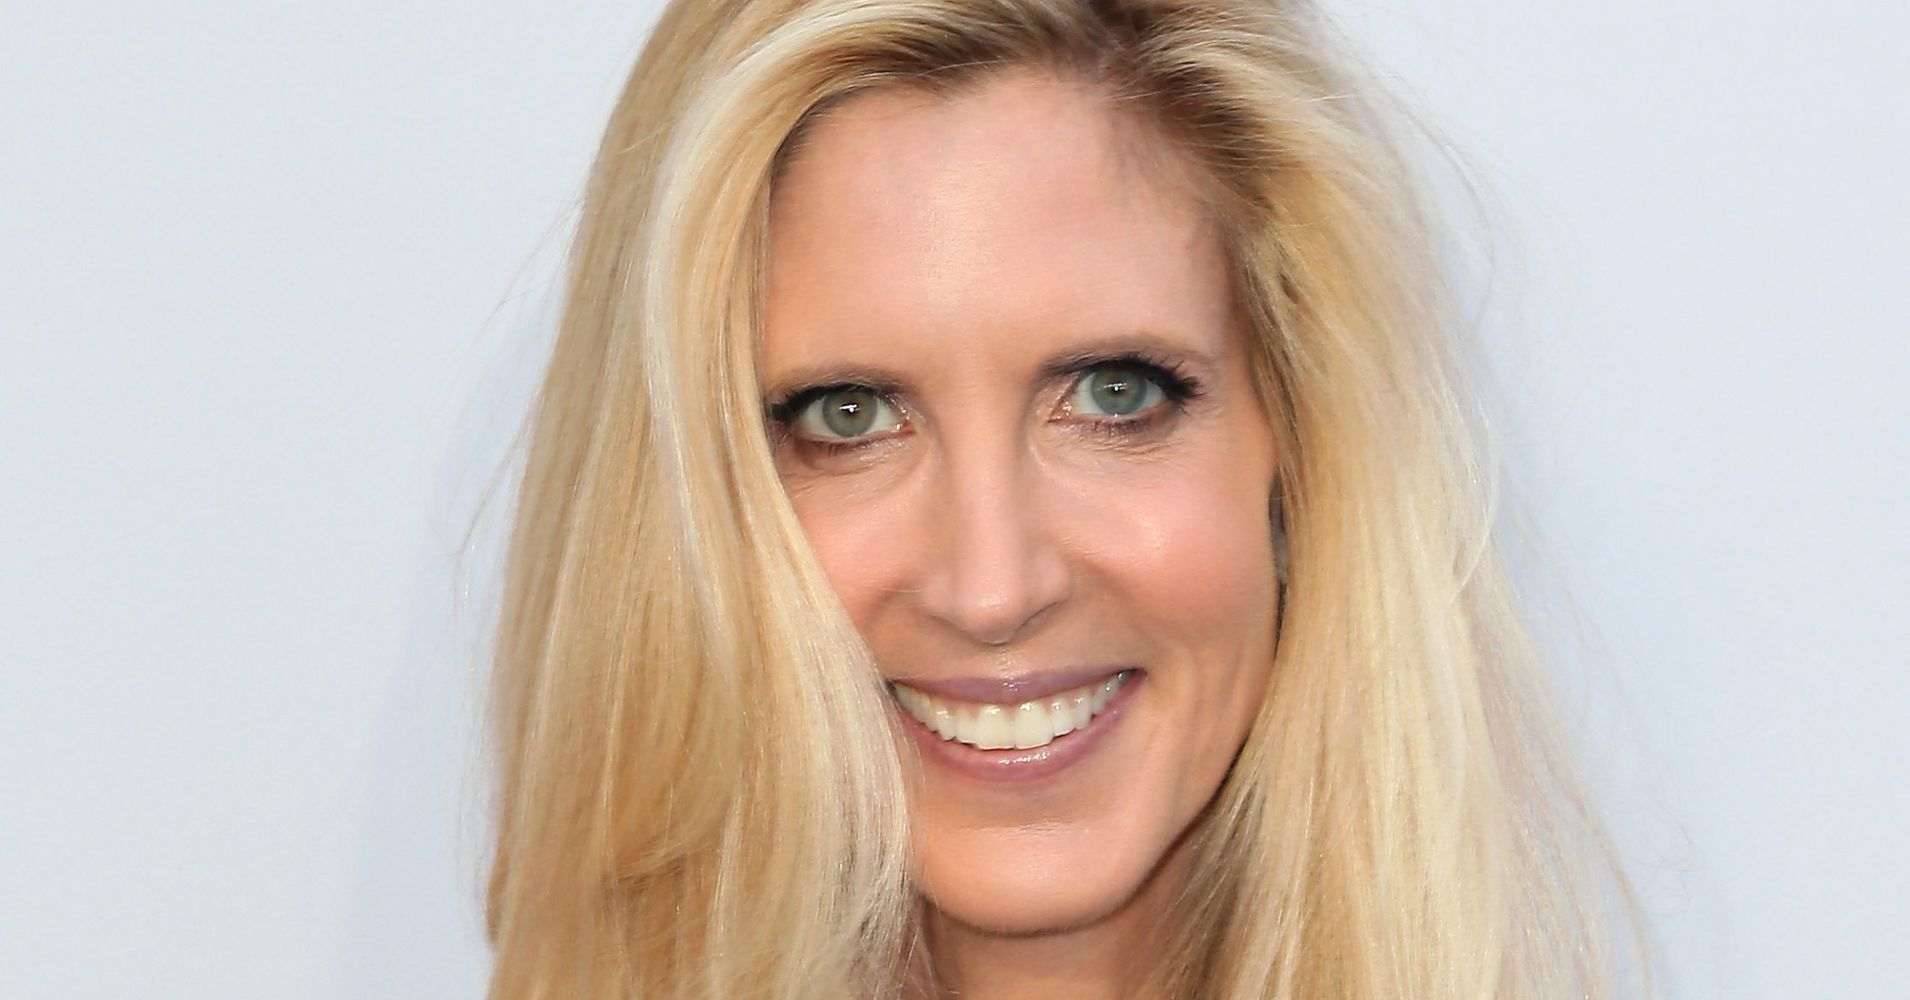 Ann Coulter Claims Delta Changed Her Seat For Political Reasons - HuffPost